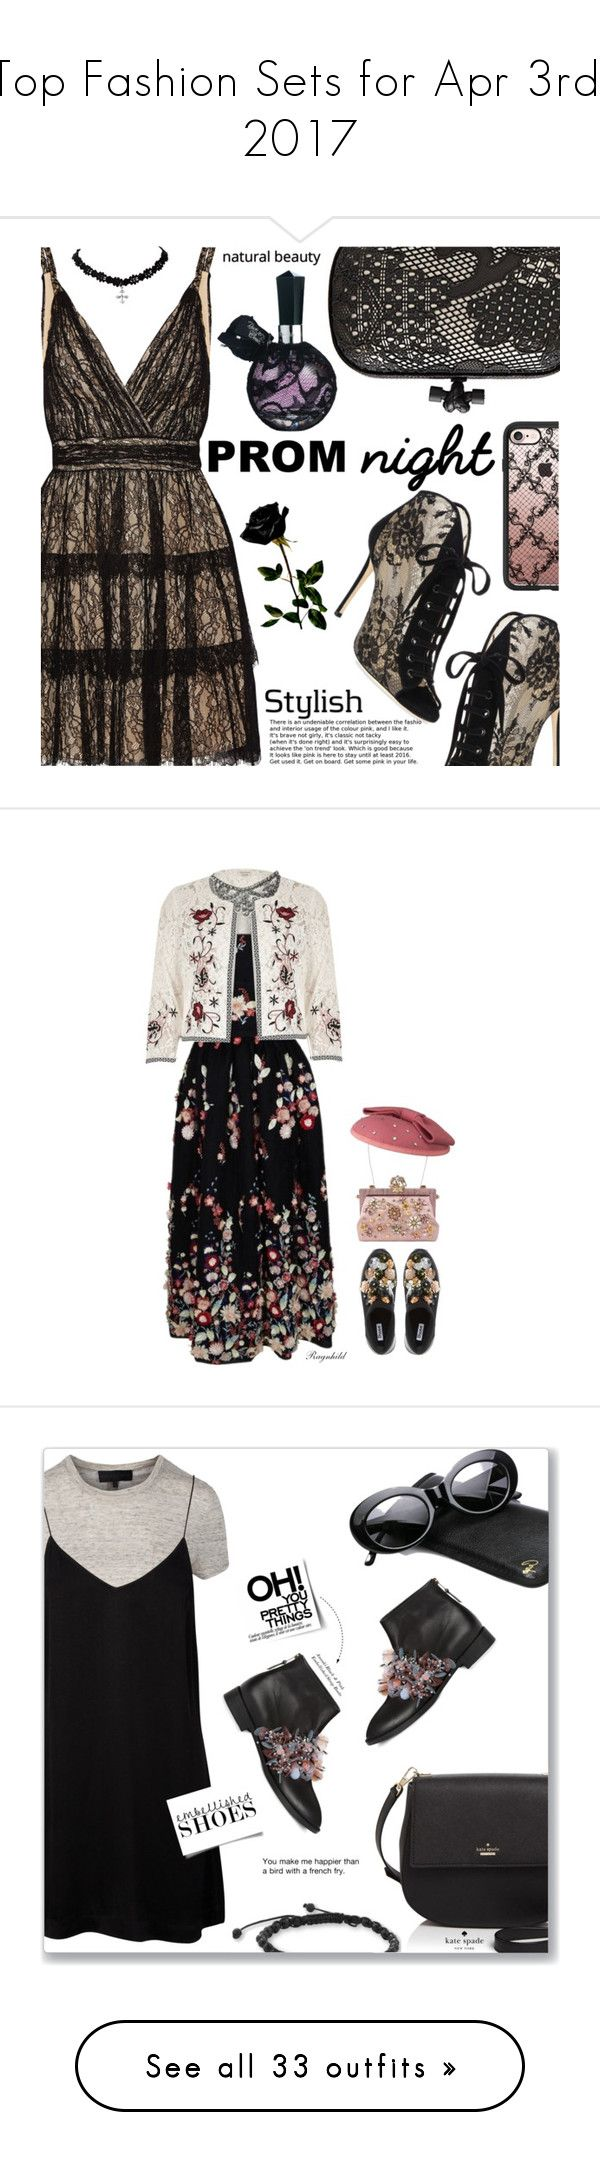 """""""Top Fashion Sets for Apr 3rd, 2017"""" by polyvore ❤ liked on Polyvore featuring Alice + Olivia, Jimmy Choo, Bottega Veneta, Casetify, River Island, The 2nd Skin Co., Dune, Dolce&Gabbana, Anouki and Kate Spade"""